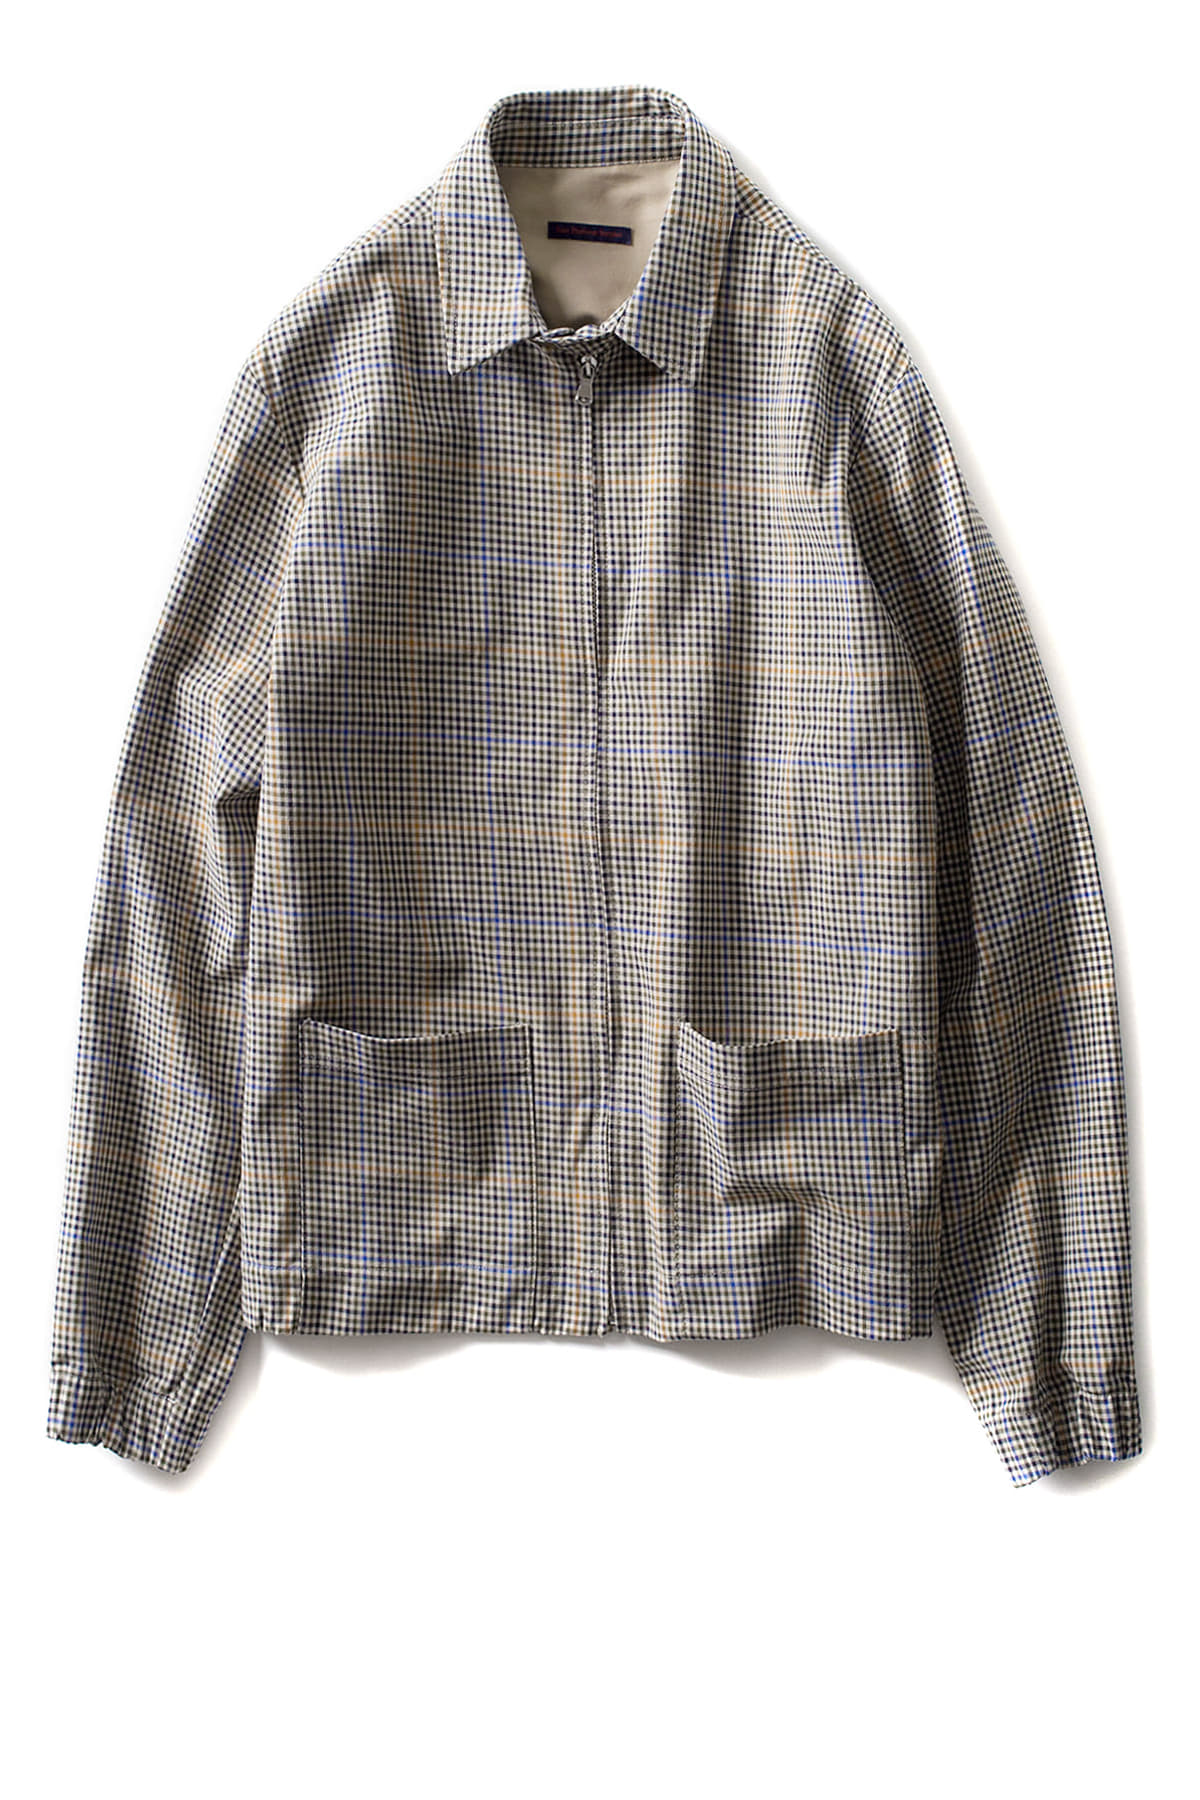 East Harbour Surplus : Barret Blouson (Gingham)